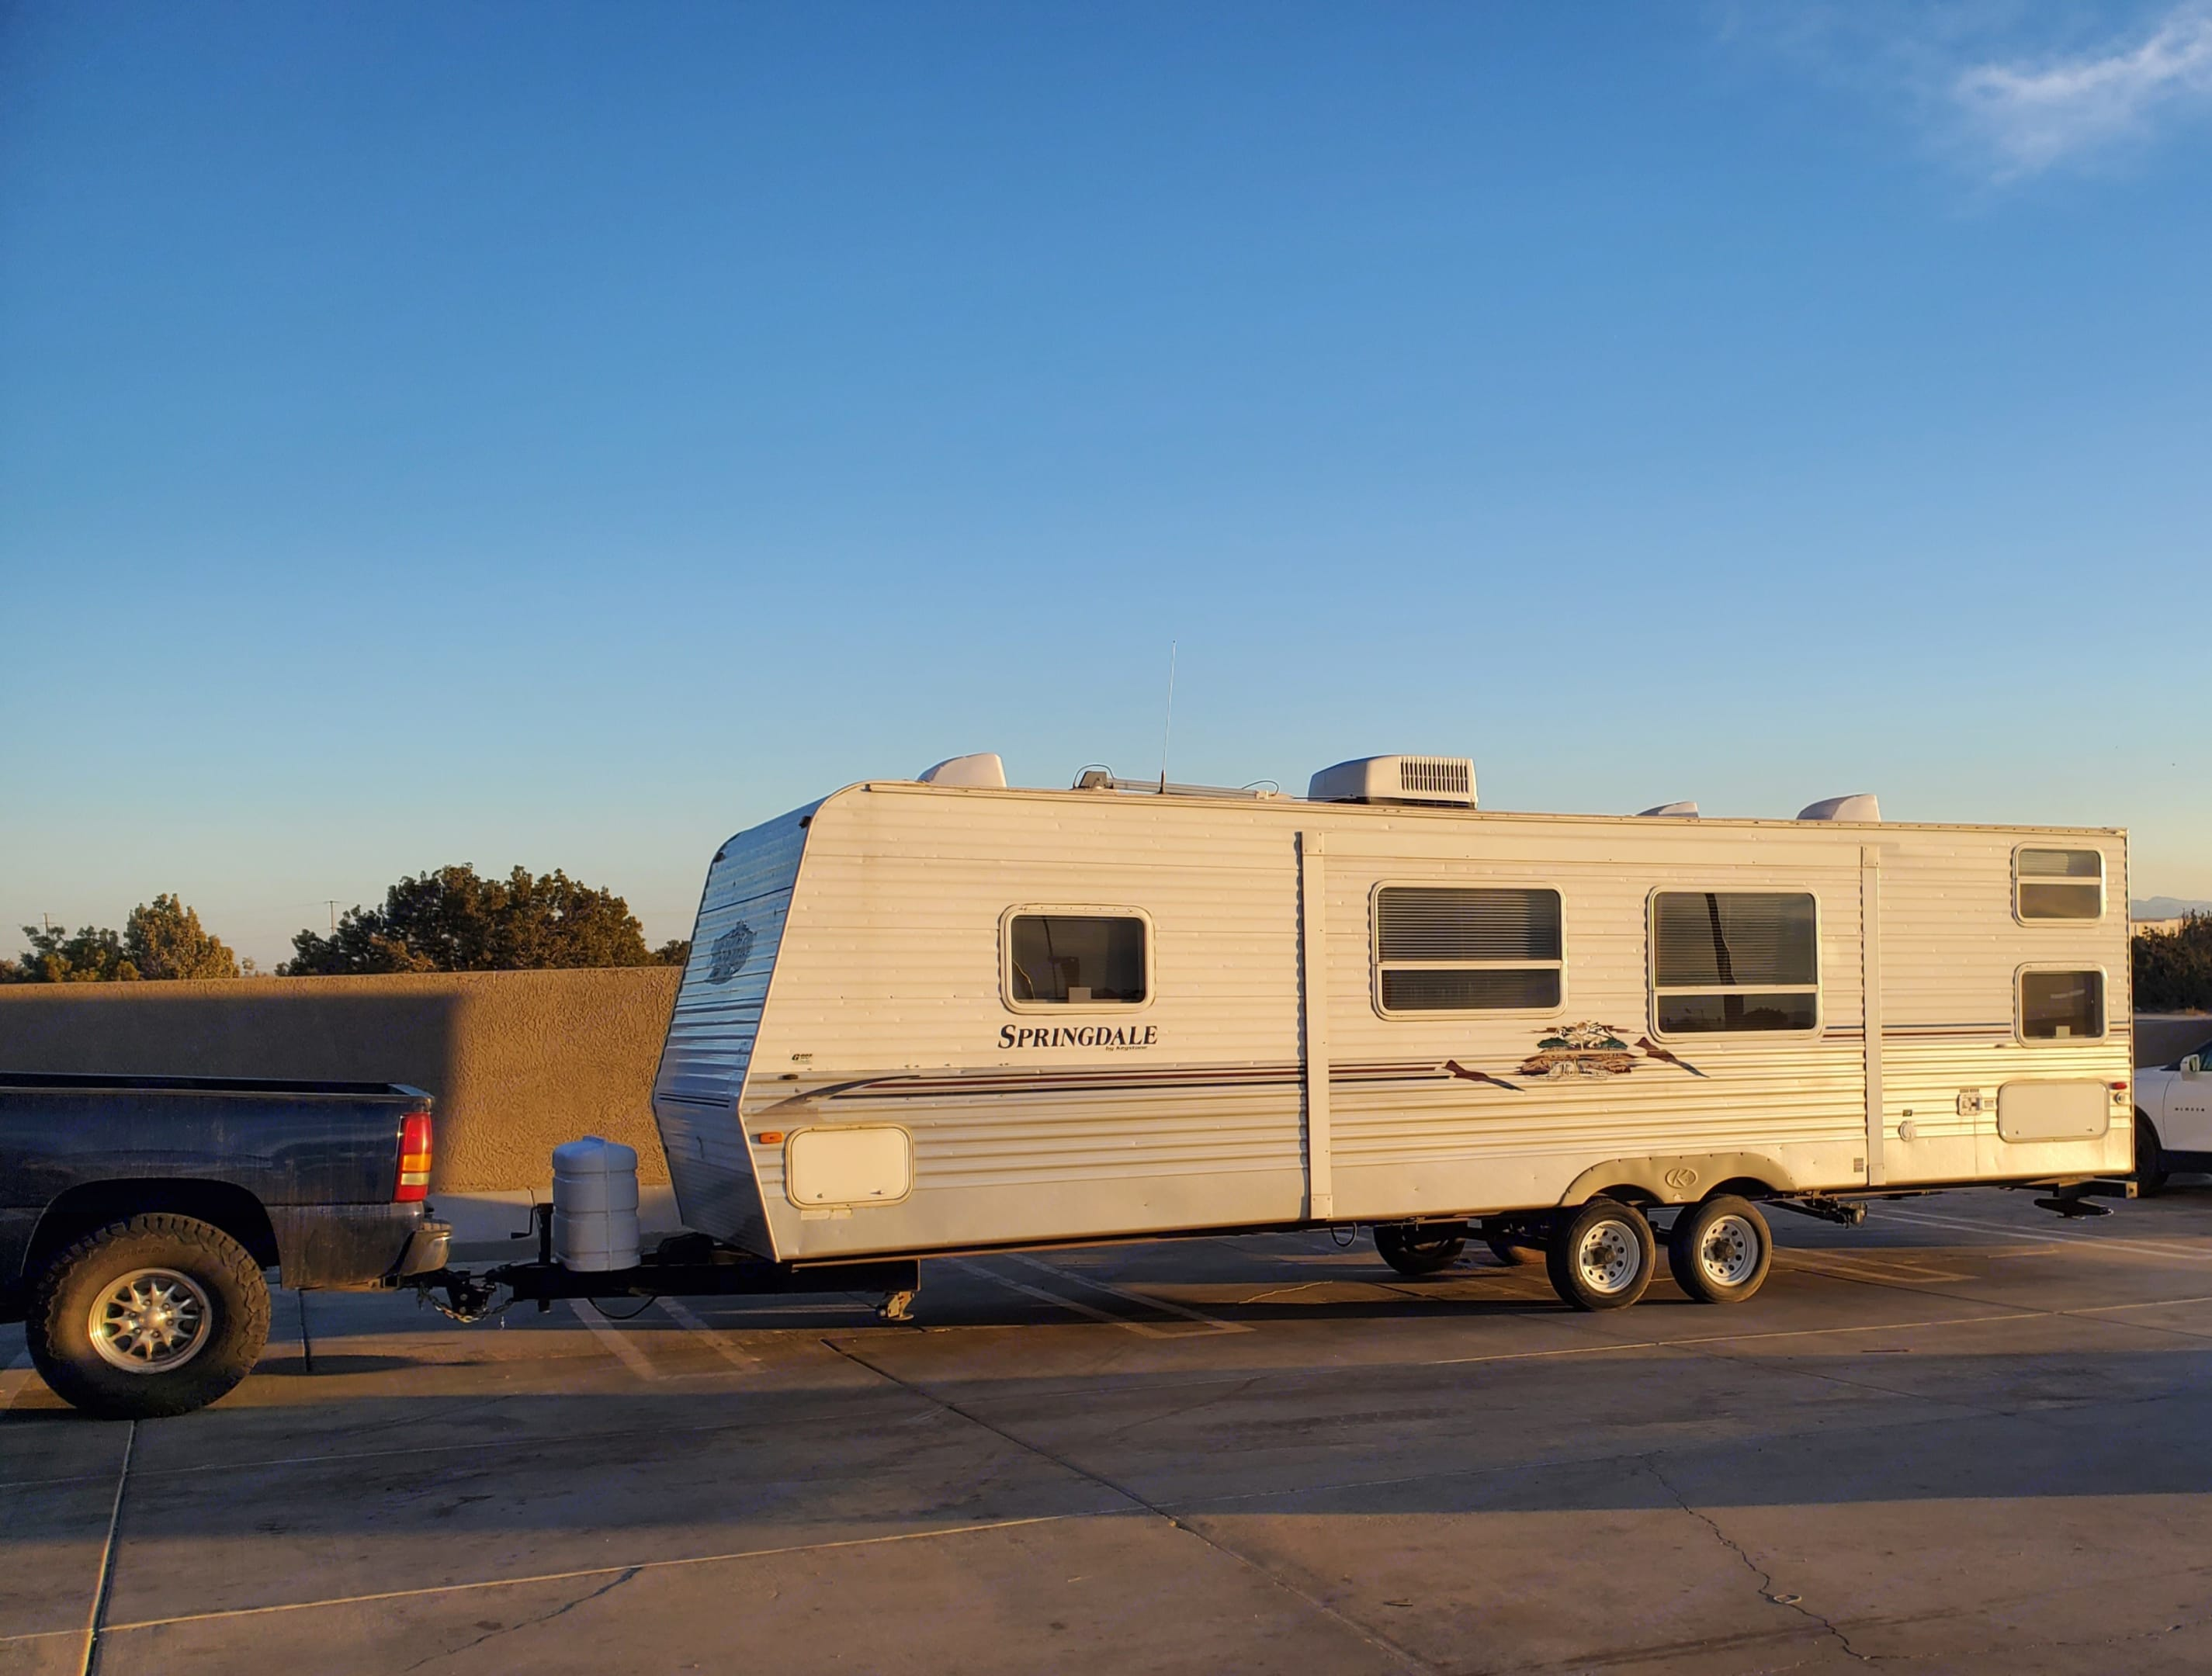 29' - 6810 Dry Weight. Springdale 2007